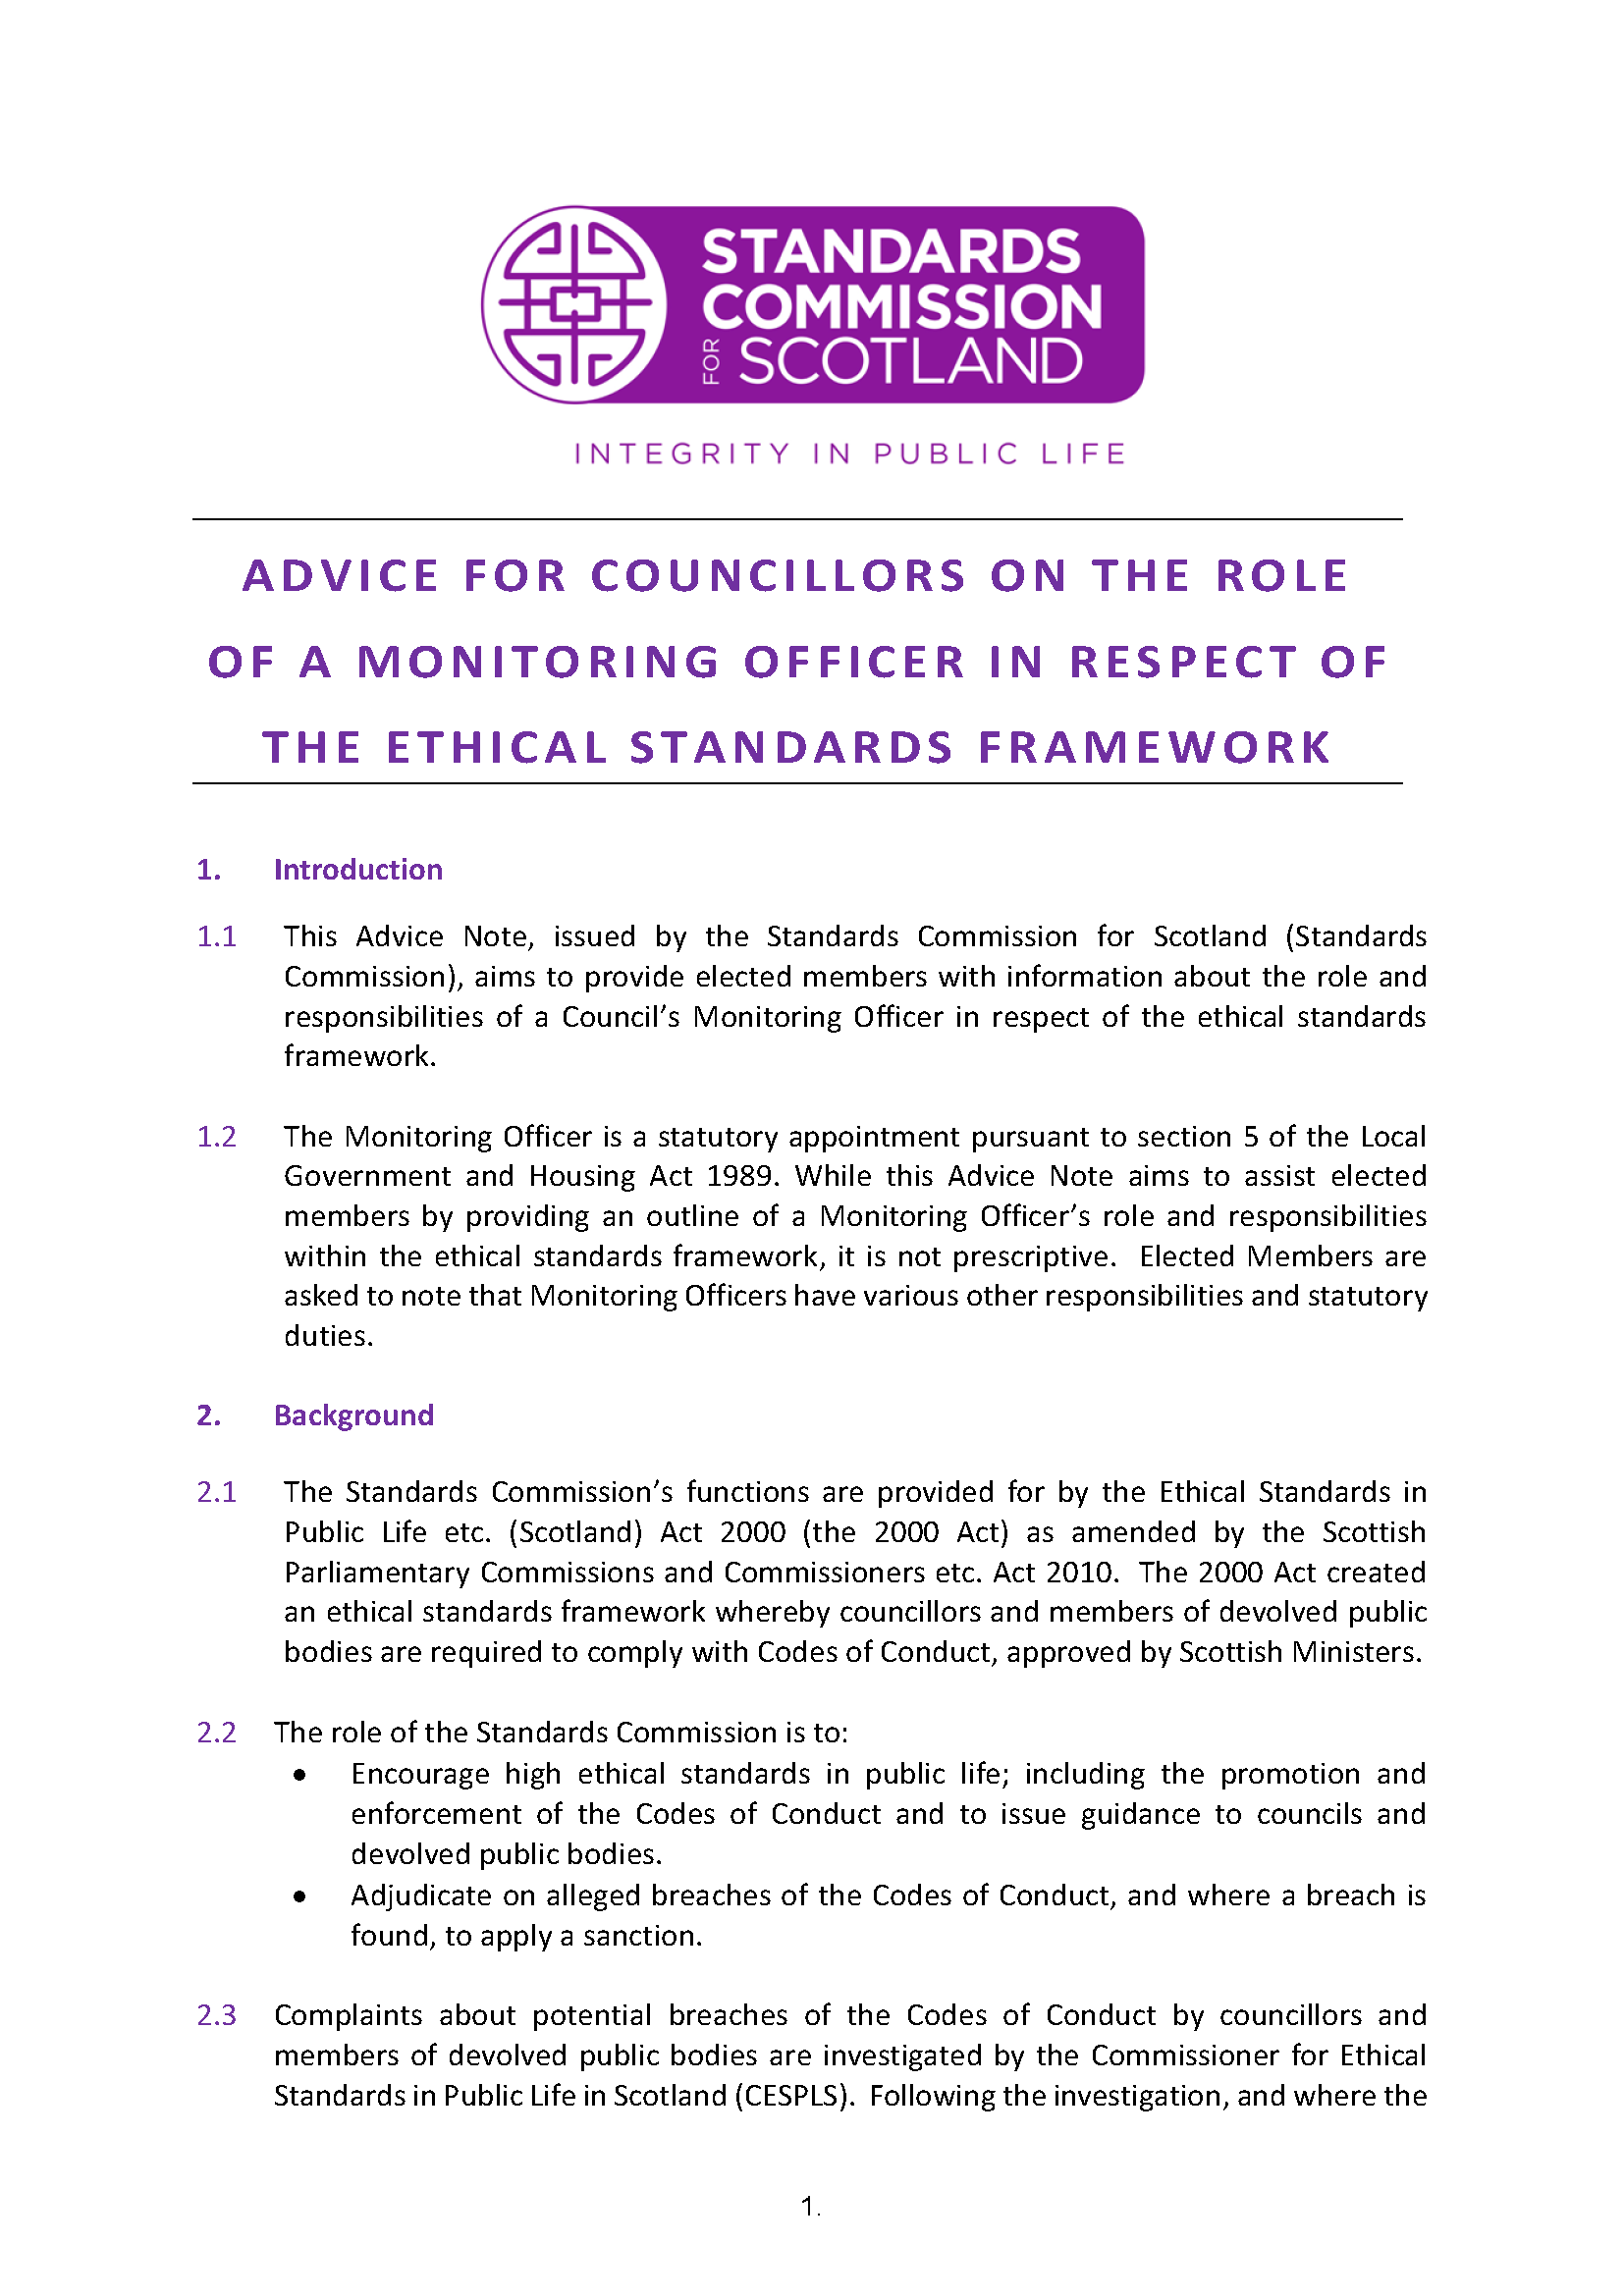 Advice Note for Councillors on the Role of the Monitoring Officer